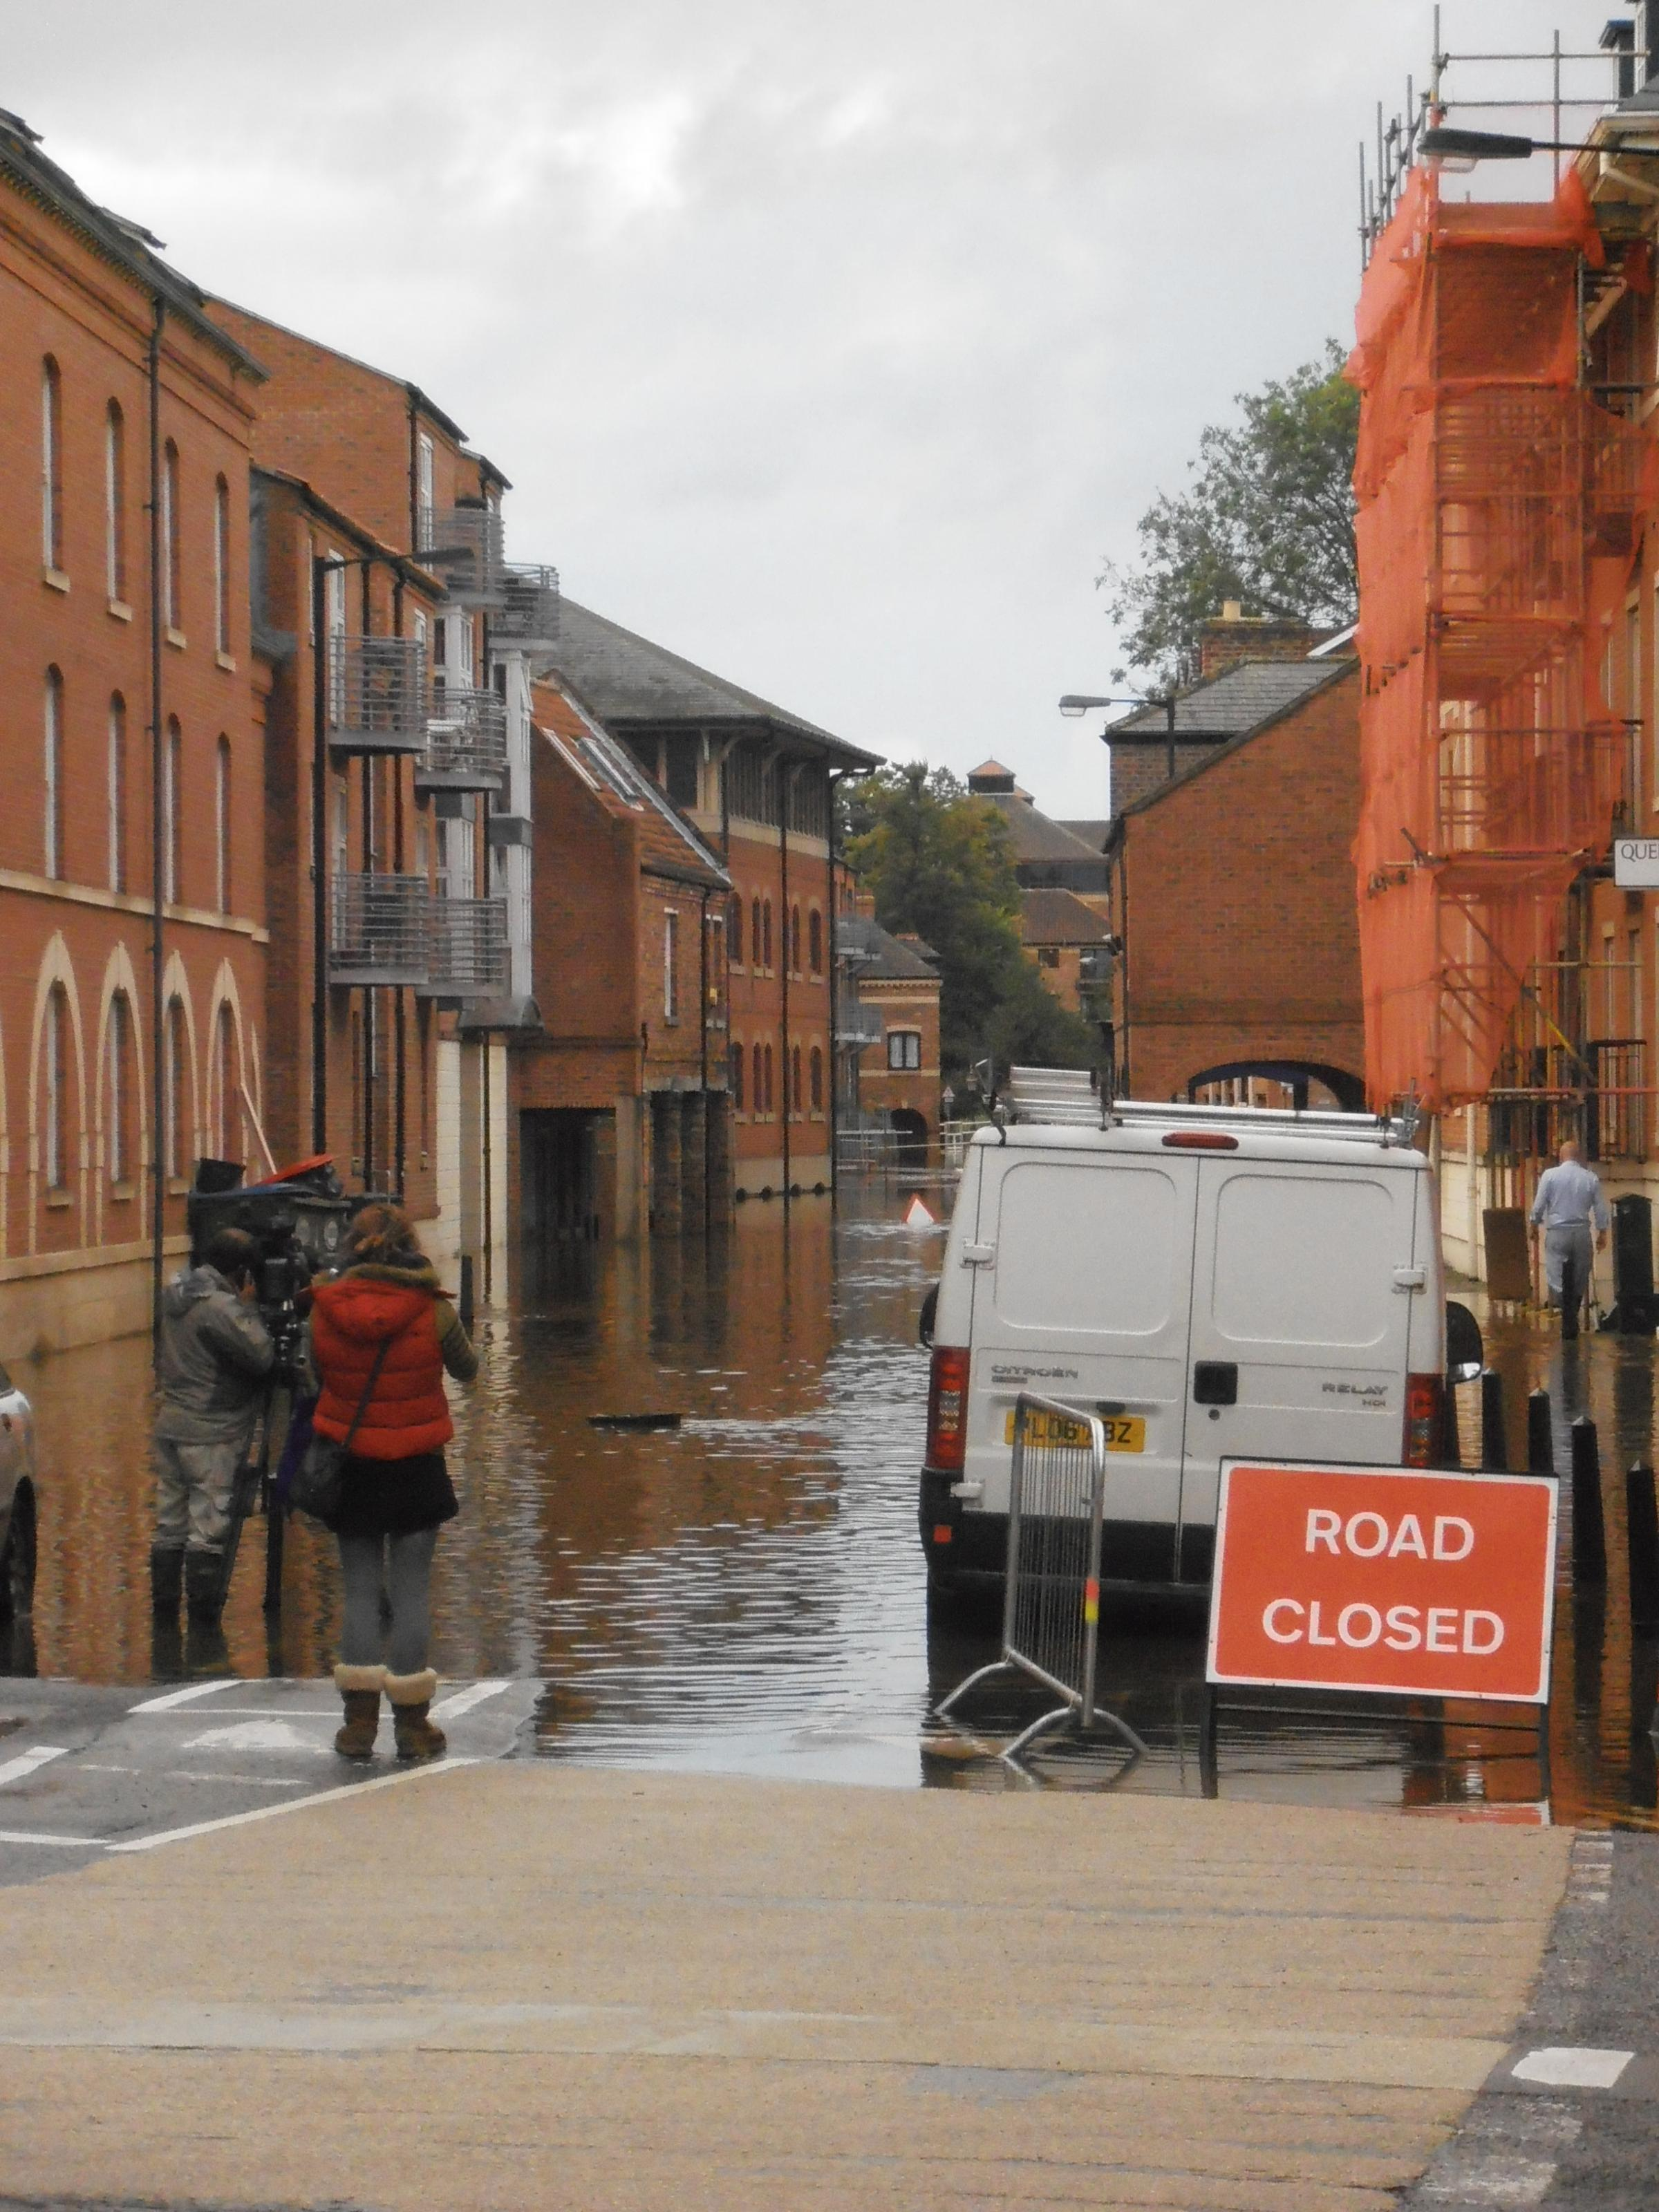 Two thirds of men would risk driving through floodwater